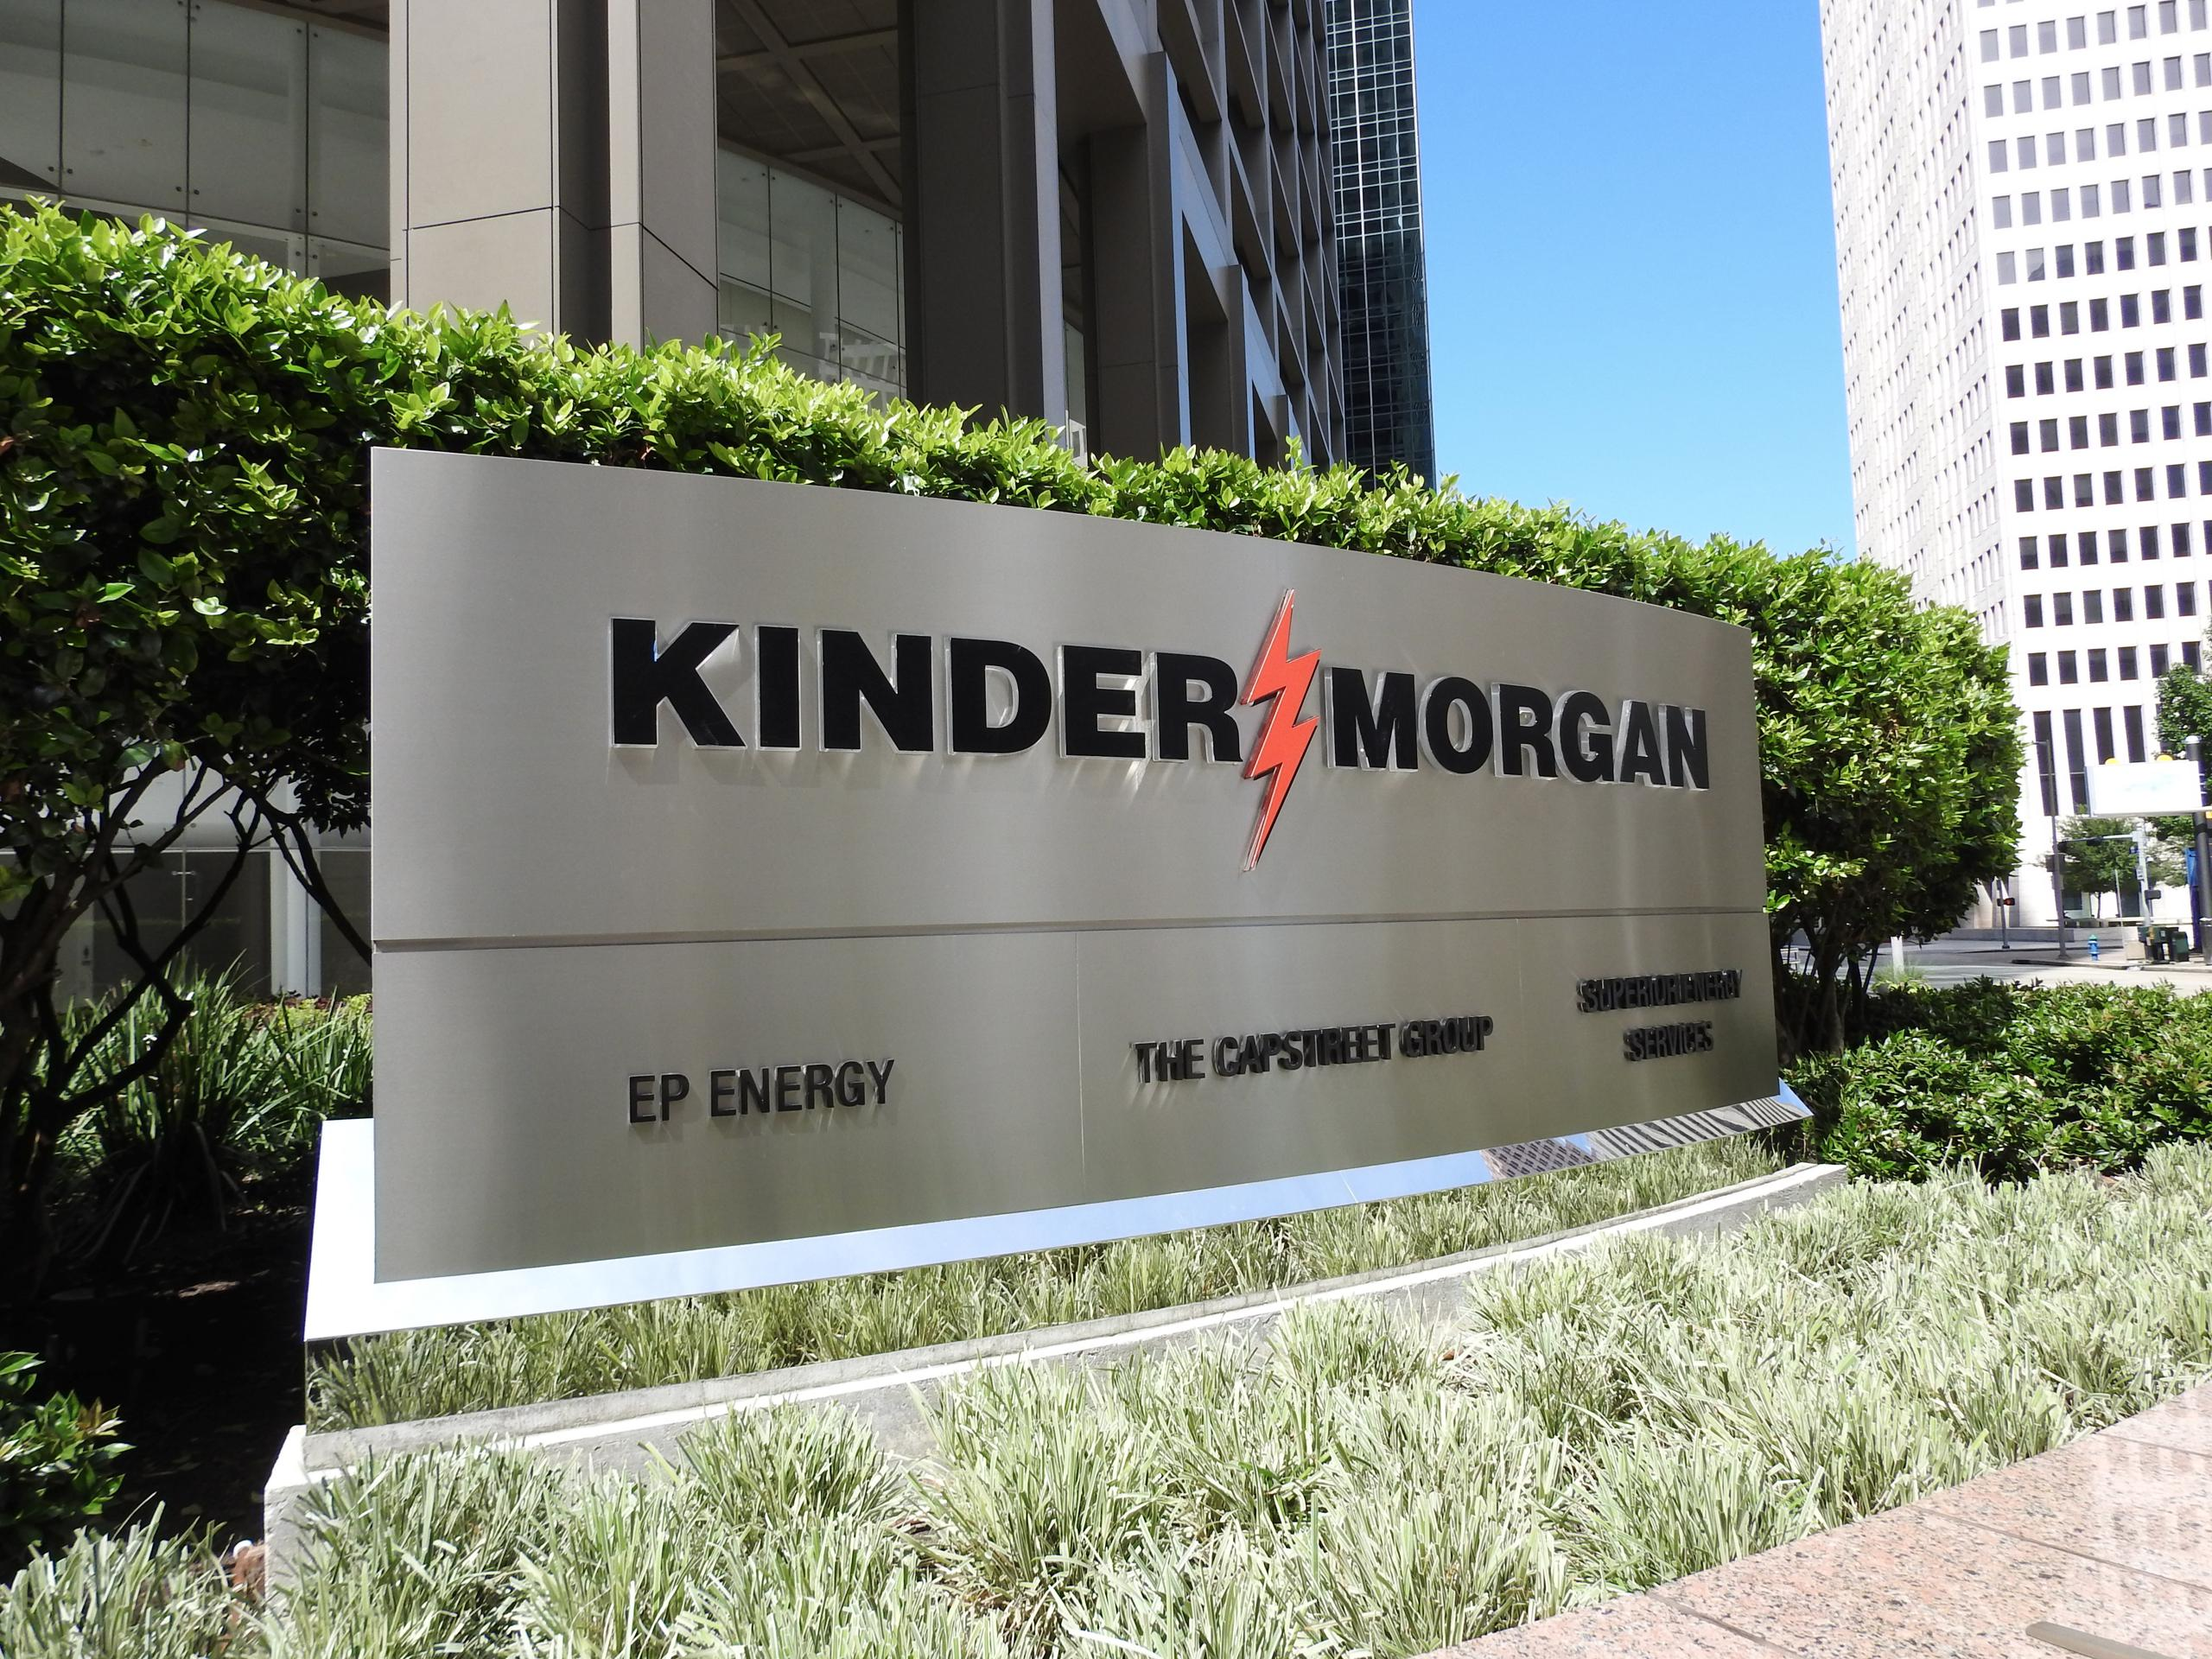 Kinder Morgan going Biofriendly